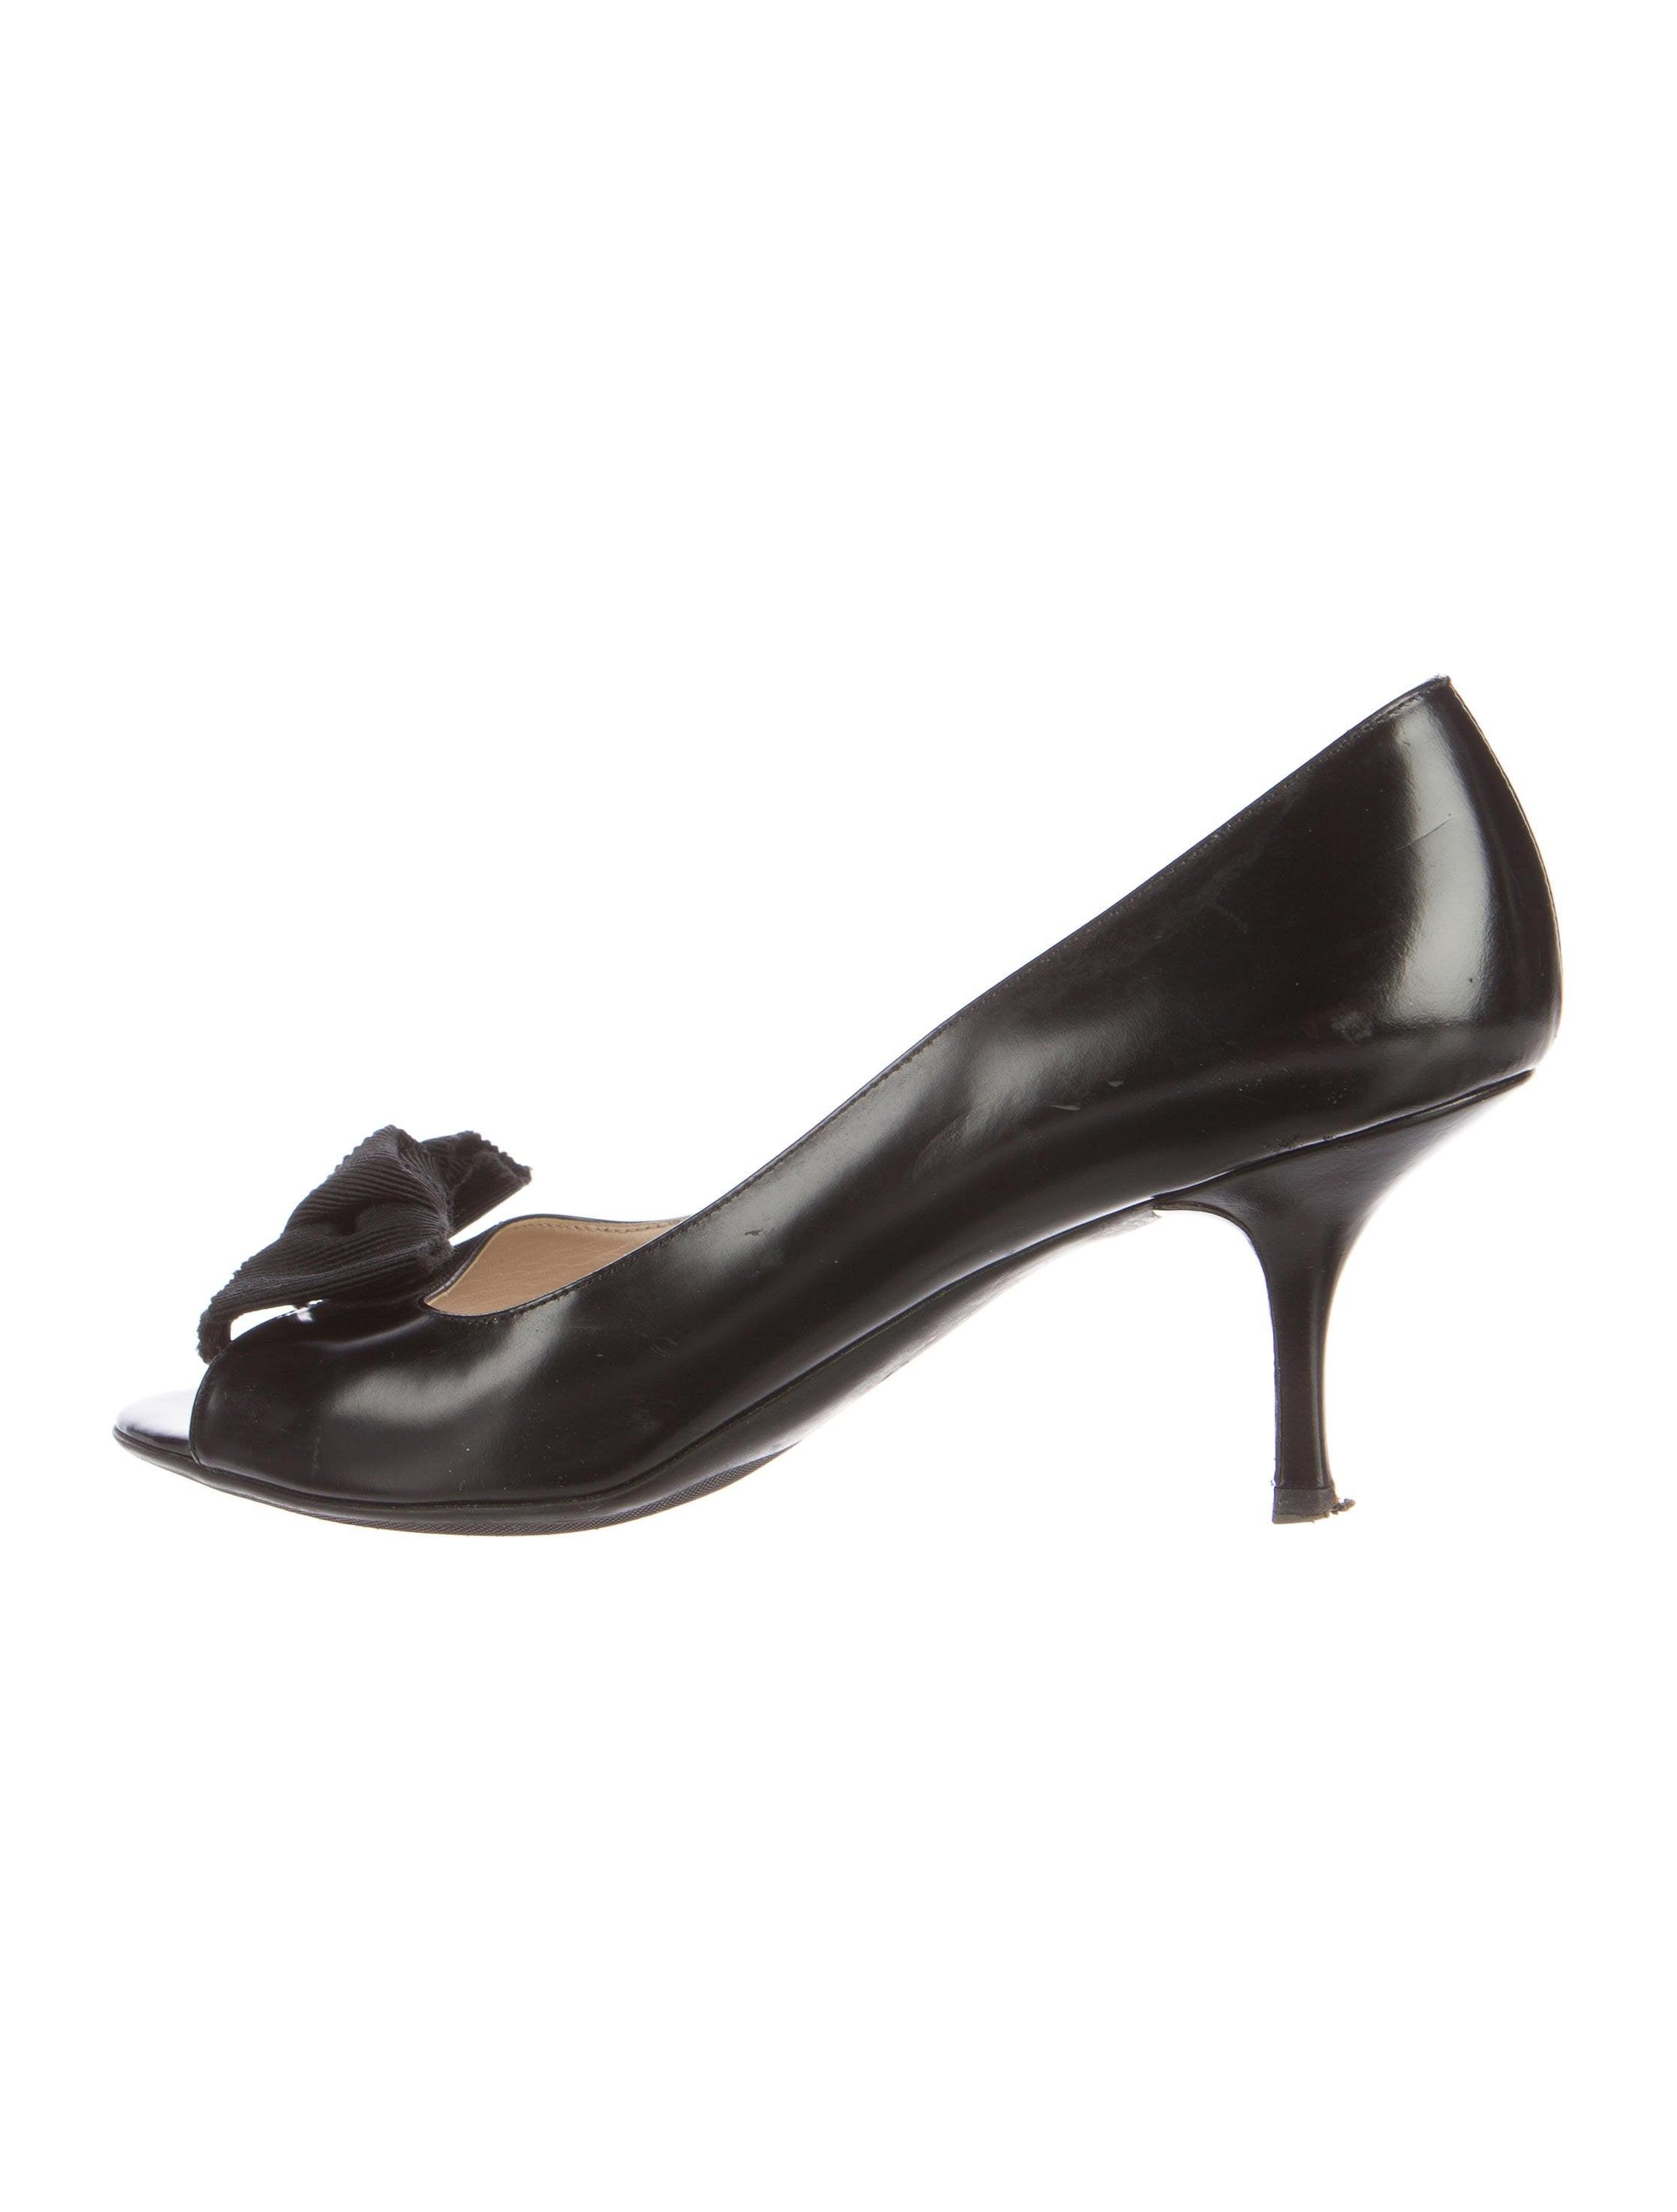 for sale buy authentic online free shipping reliable Prada Leather Bow-Accented Pumps 2015 online cheap low shipping order for sale wJqChApGCO